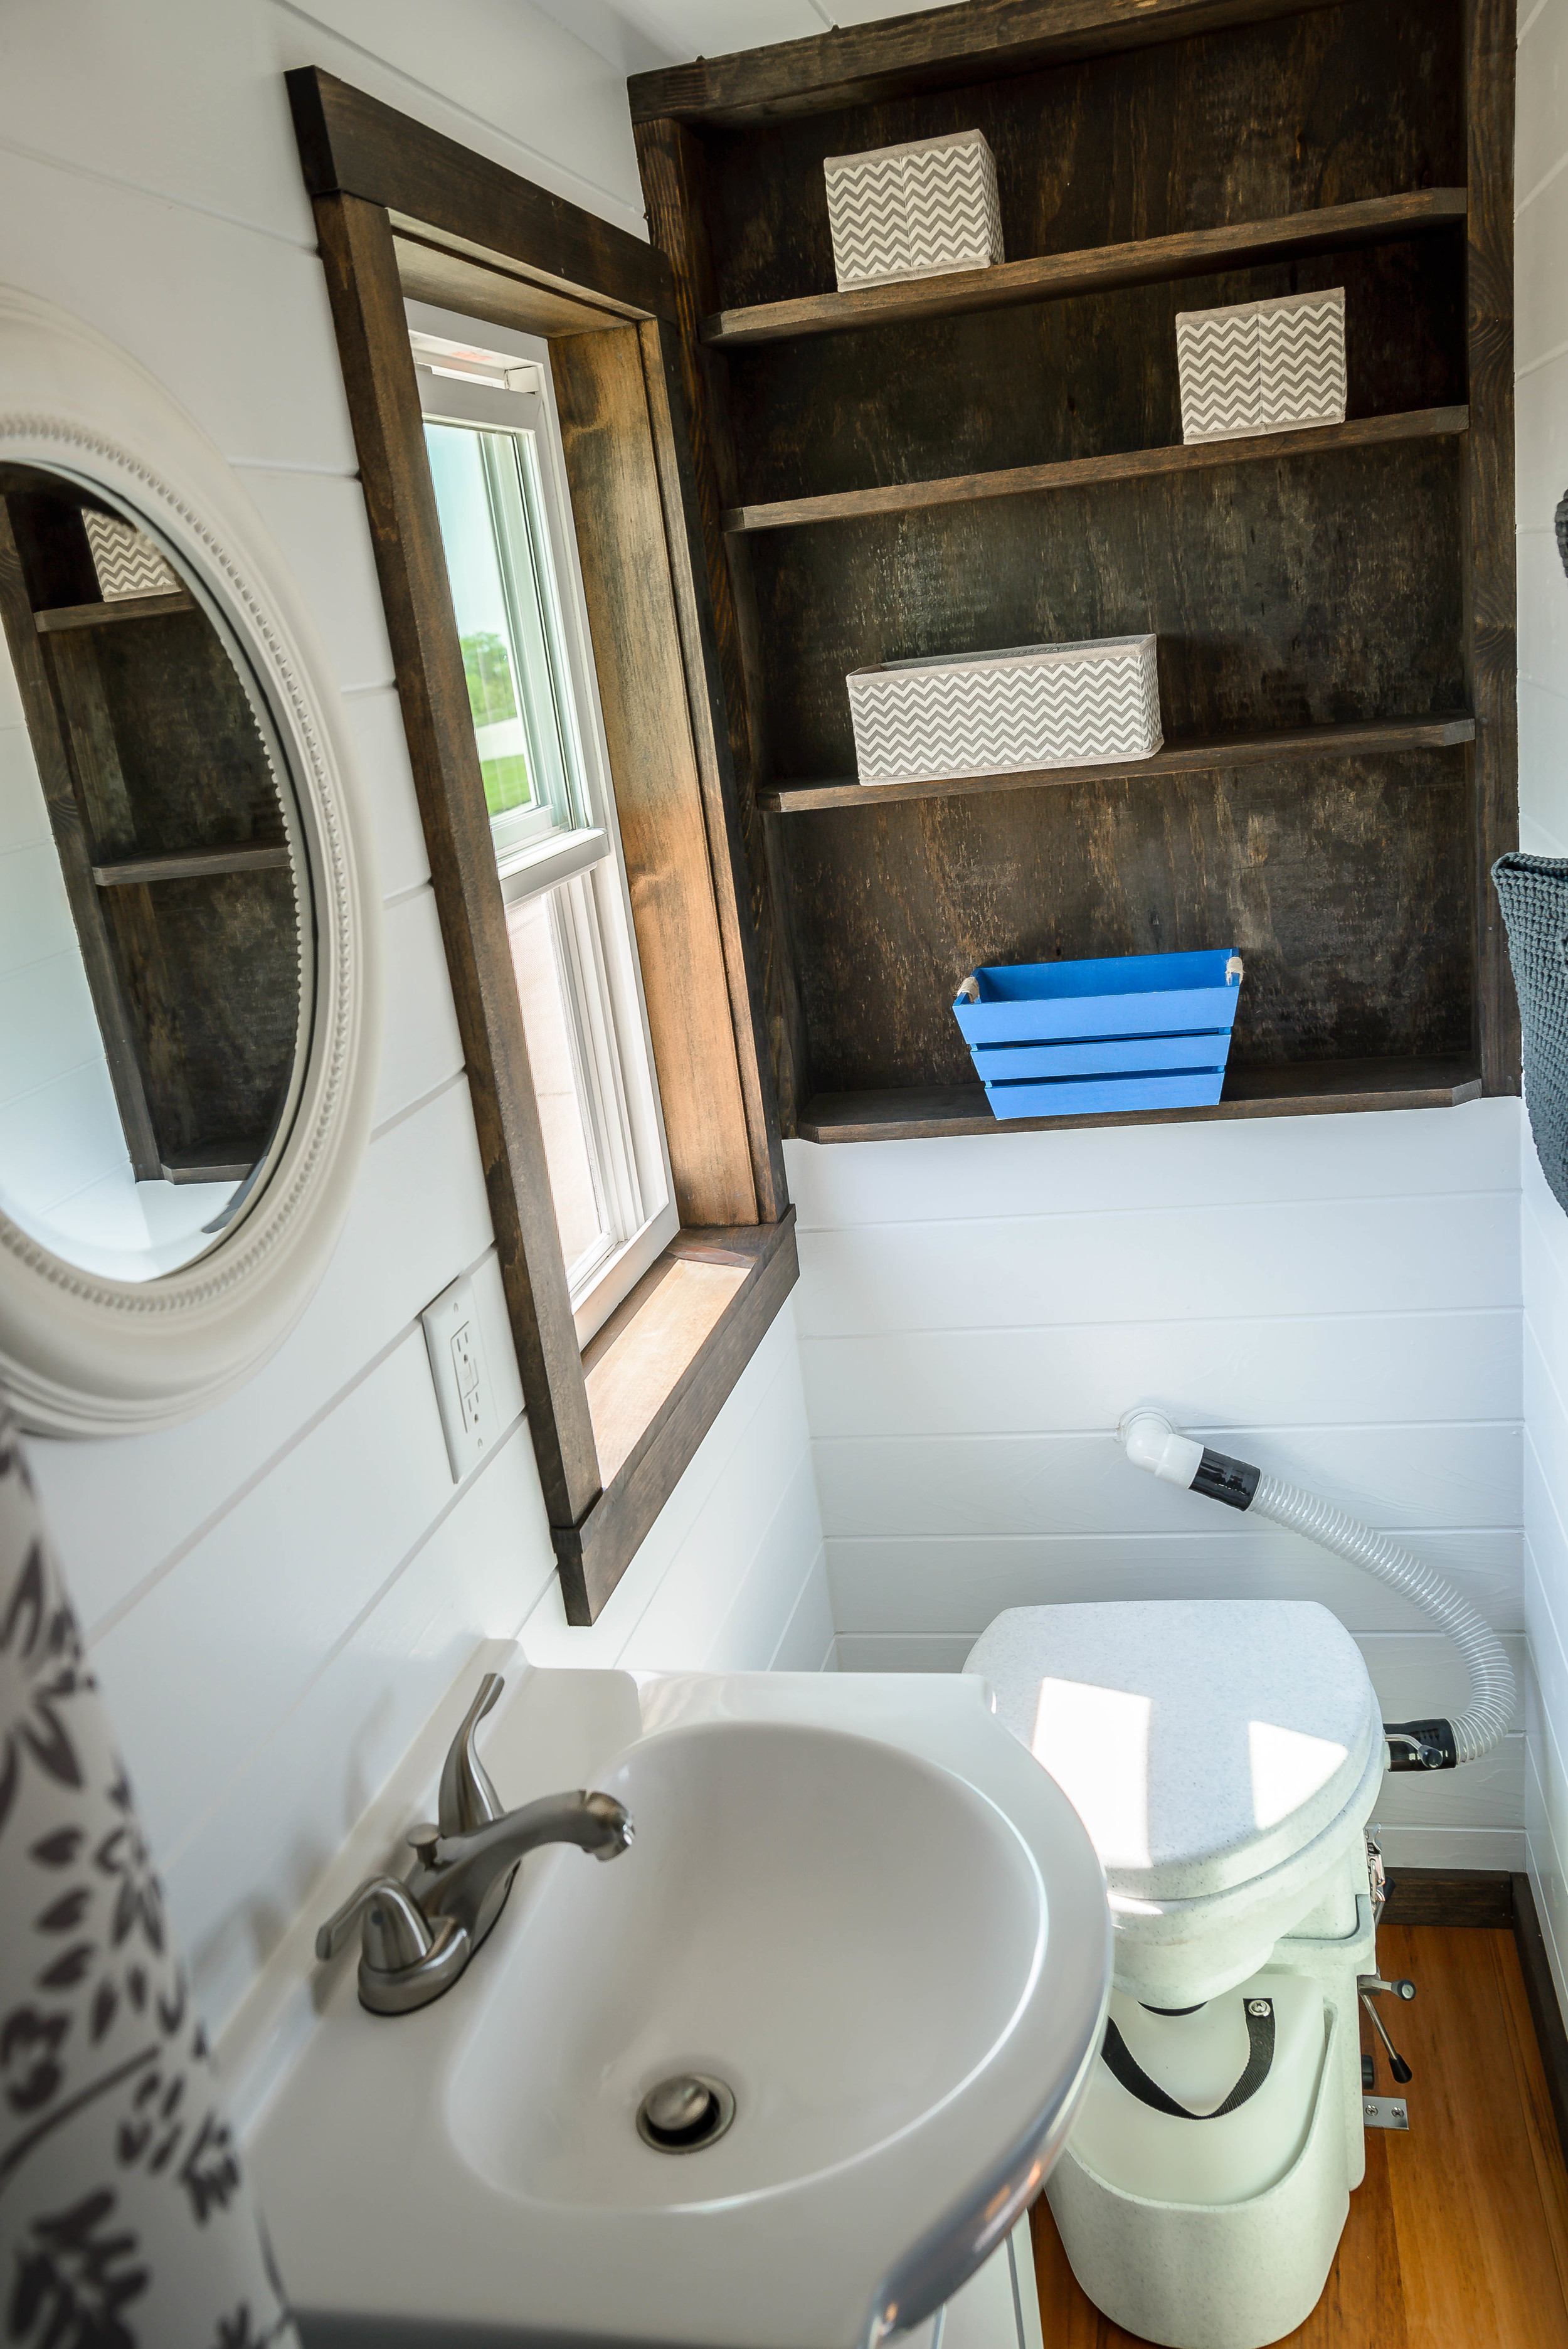 The Triton by Wind River Tiny Homes. Bathroom with vanity and custom built in shelving unit.